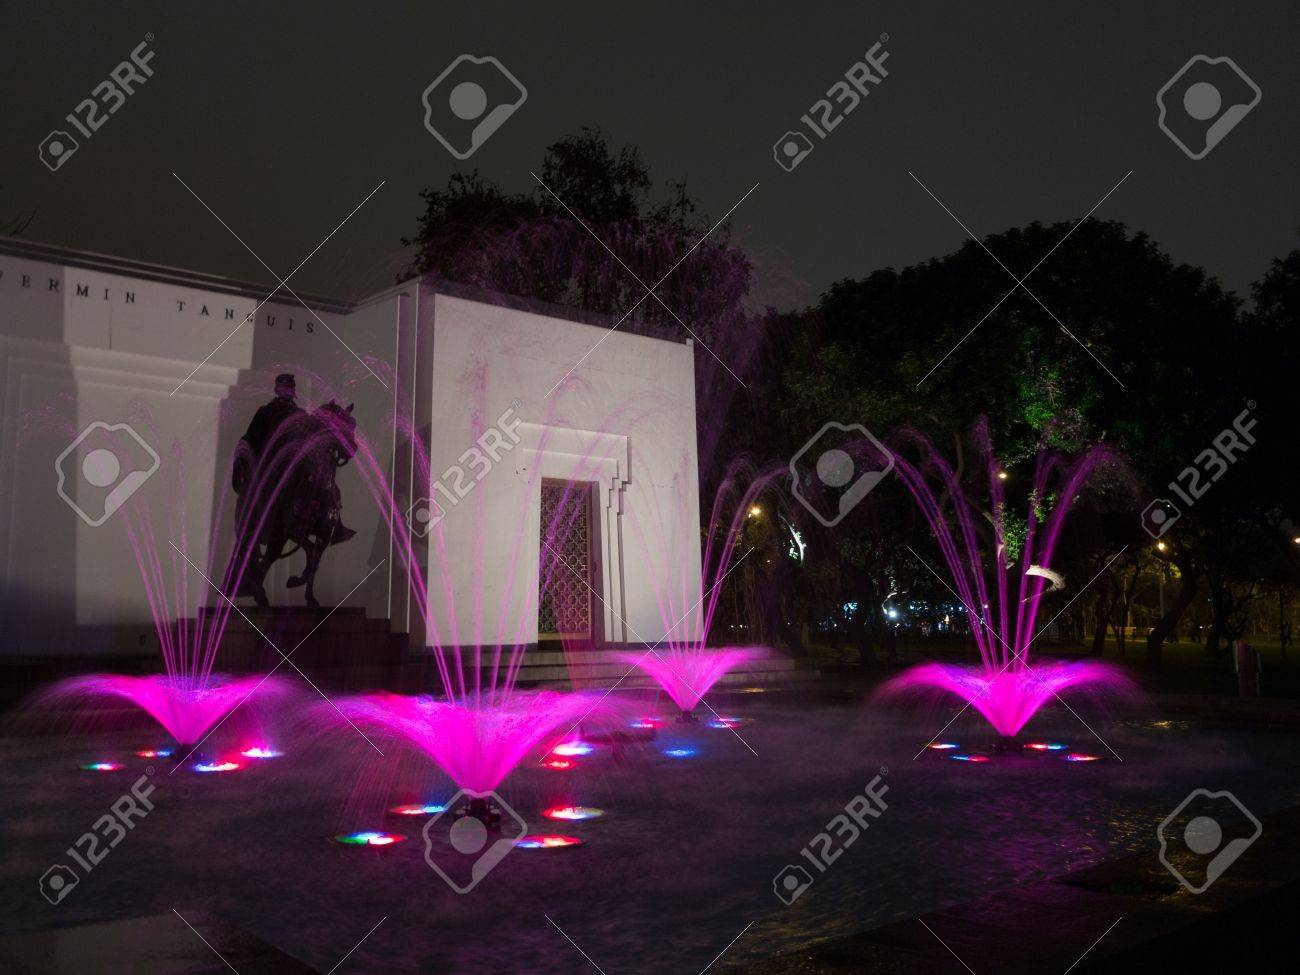 Water fountains lima - Illuminated Fountains At Dusk In Magical Water Circuit In Reserve Park Lima Peru World